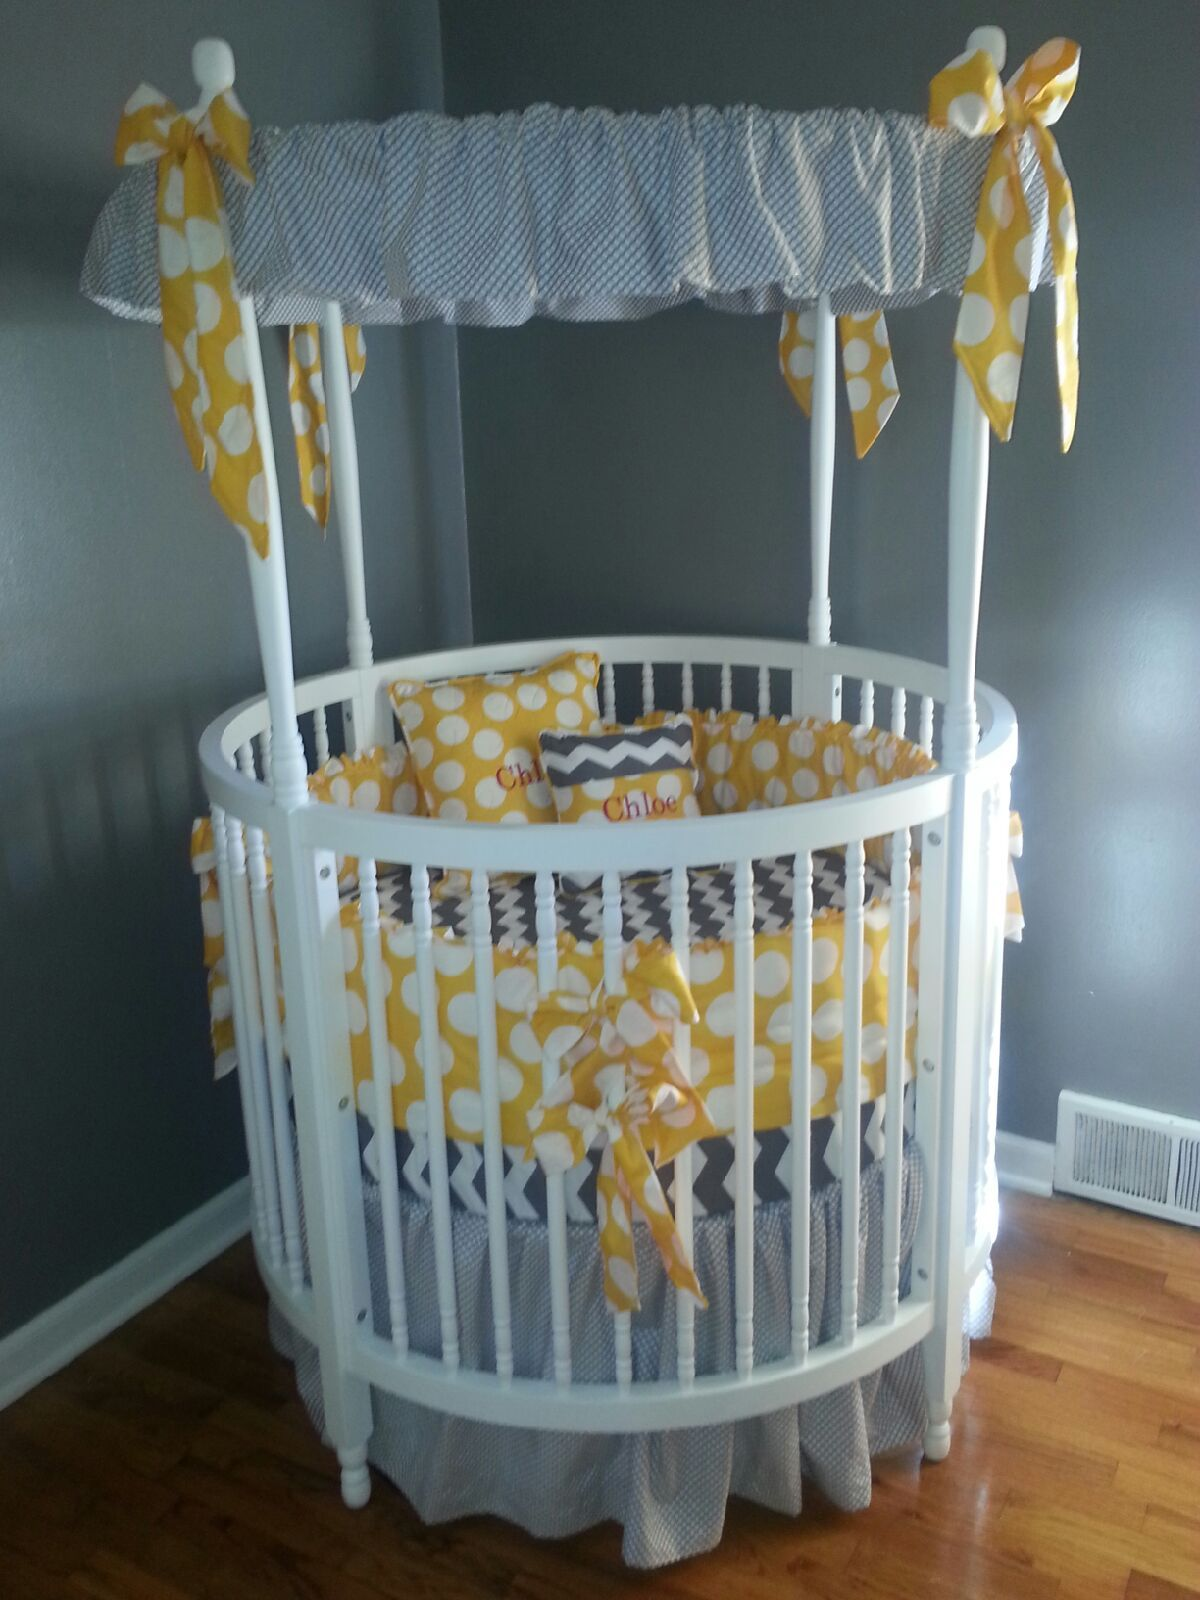 Baby cribs with canopy - Modern White Round Baby Crib With Amazing Gray Themed Canopy Accessories Also White Circle Pattern Yellow